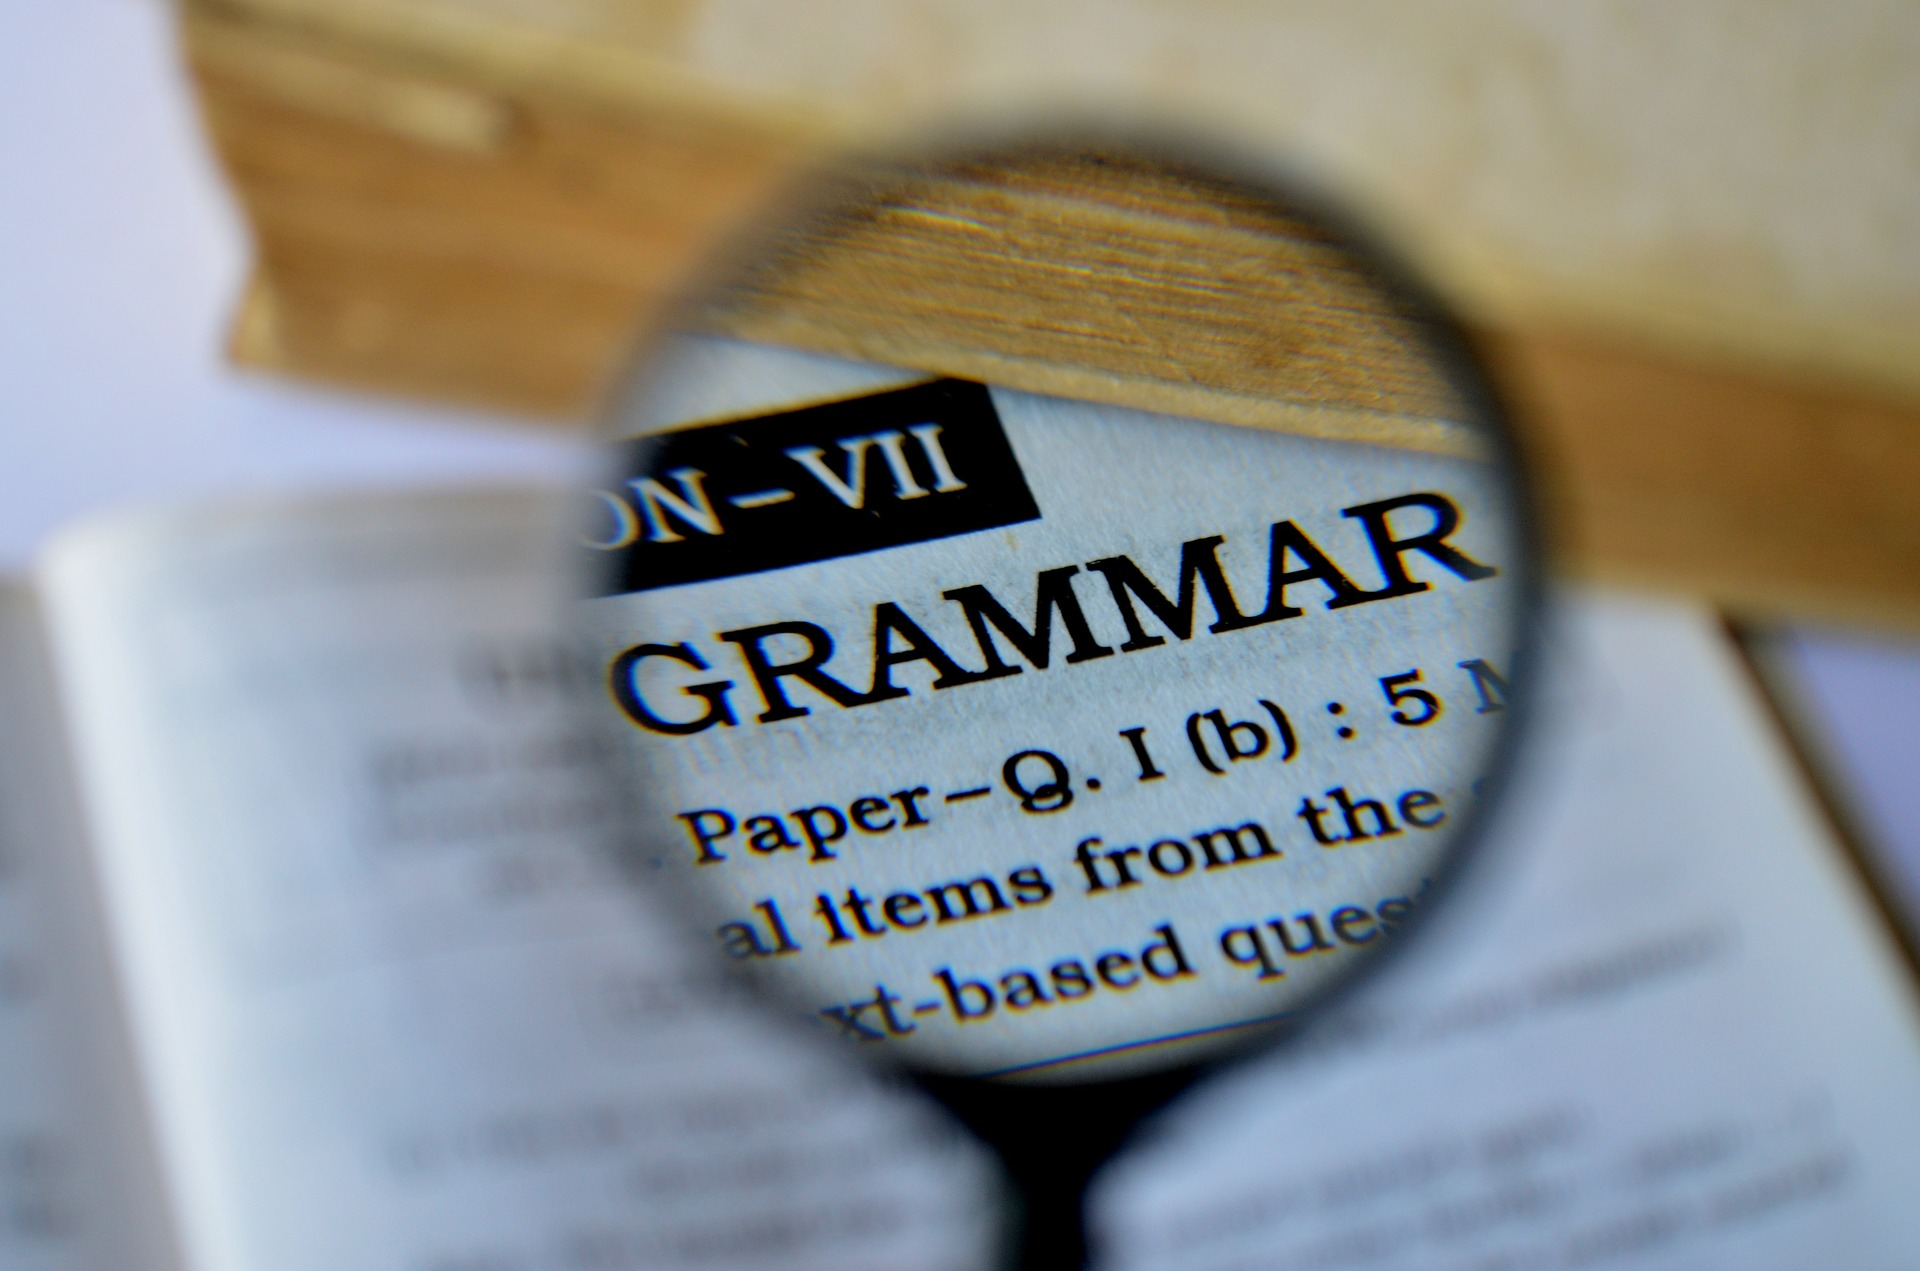 Part 1 - Which is the better? Grammarly or Hemingway?